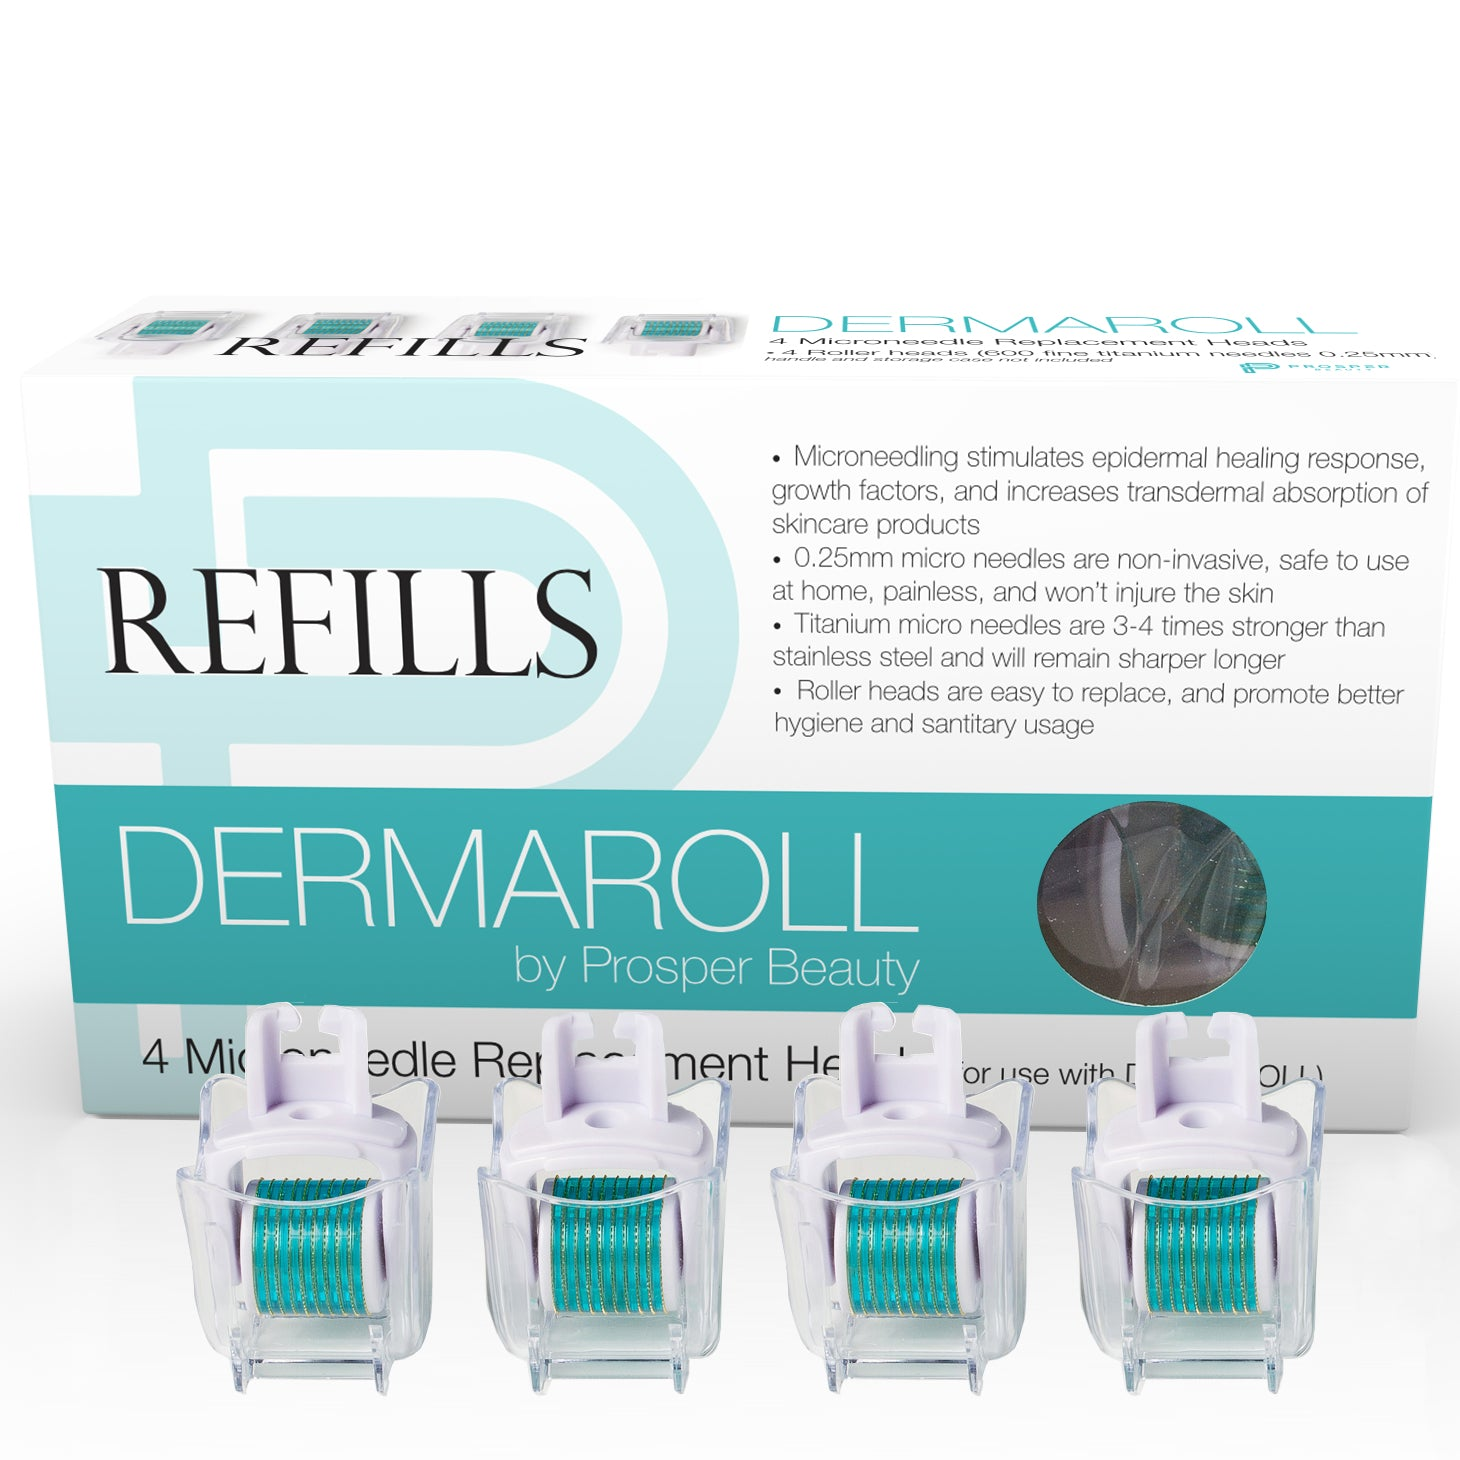 DERMAROLL REFILLS 0.25mm by Prosper Beauty (4 Microneedle Replacement Heads 0.25mm)